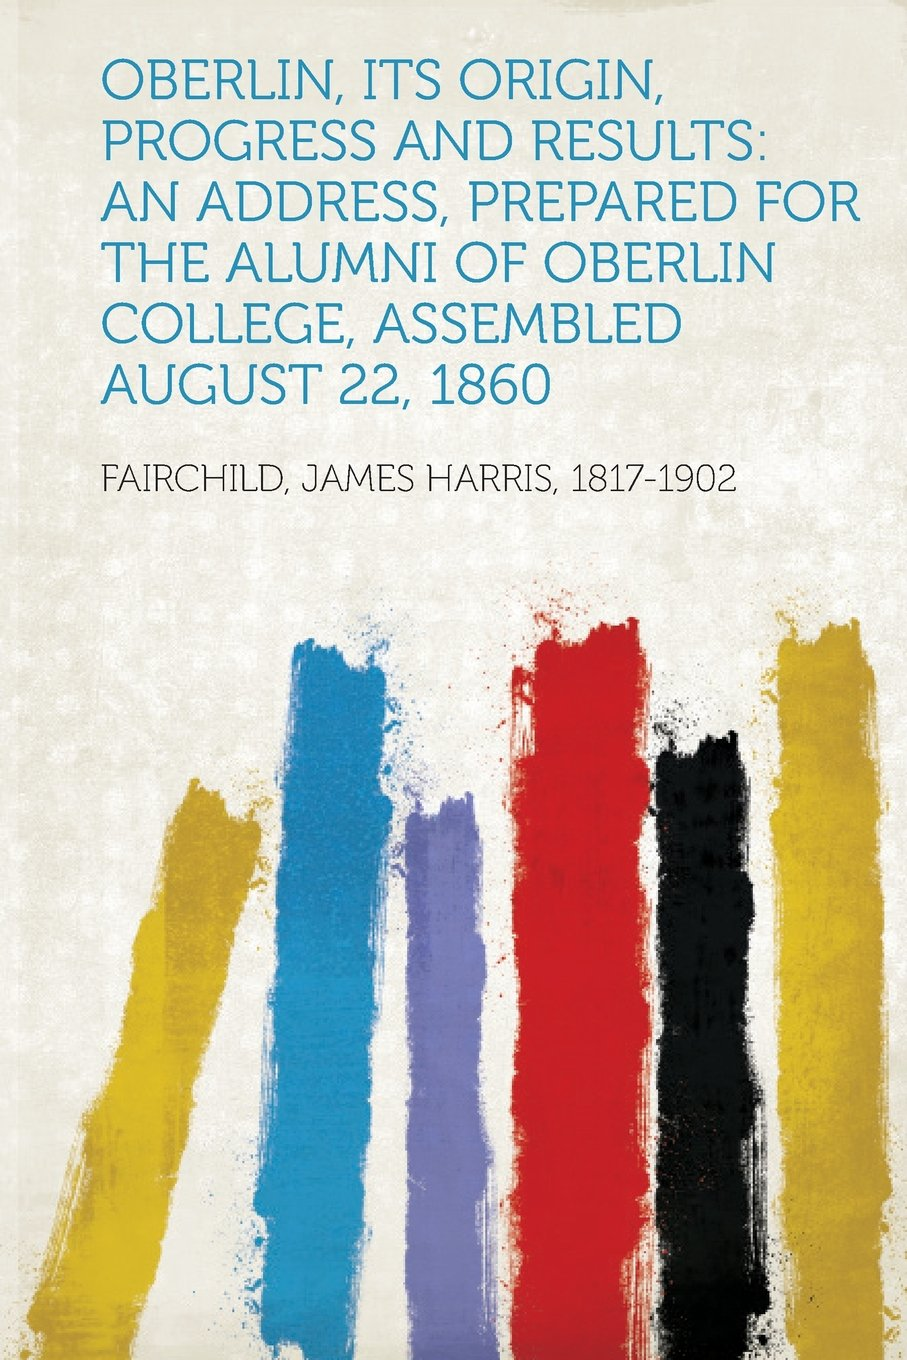 Oberlin, Its Origin, Progress and Results: An Address, Prepared for the Alumni of Oberlin College, Assembled August 22, 1860 pdf